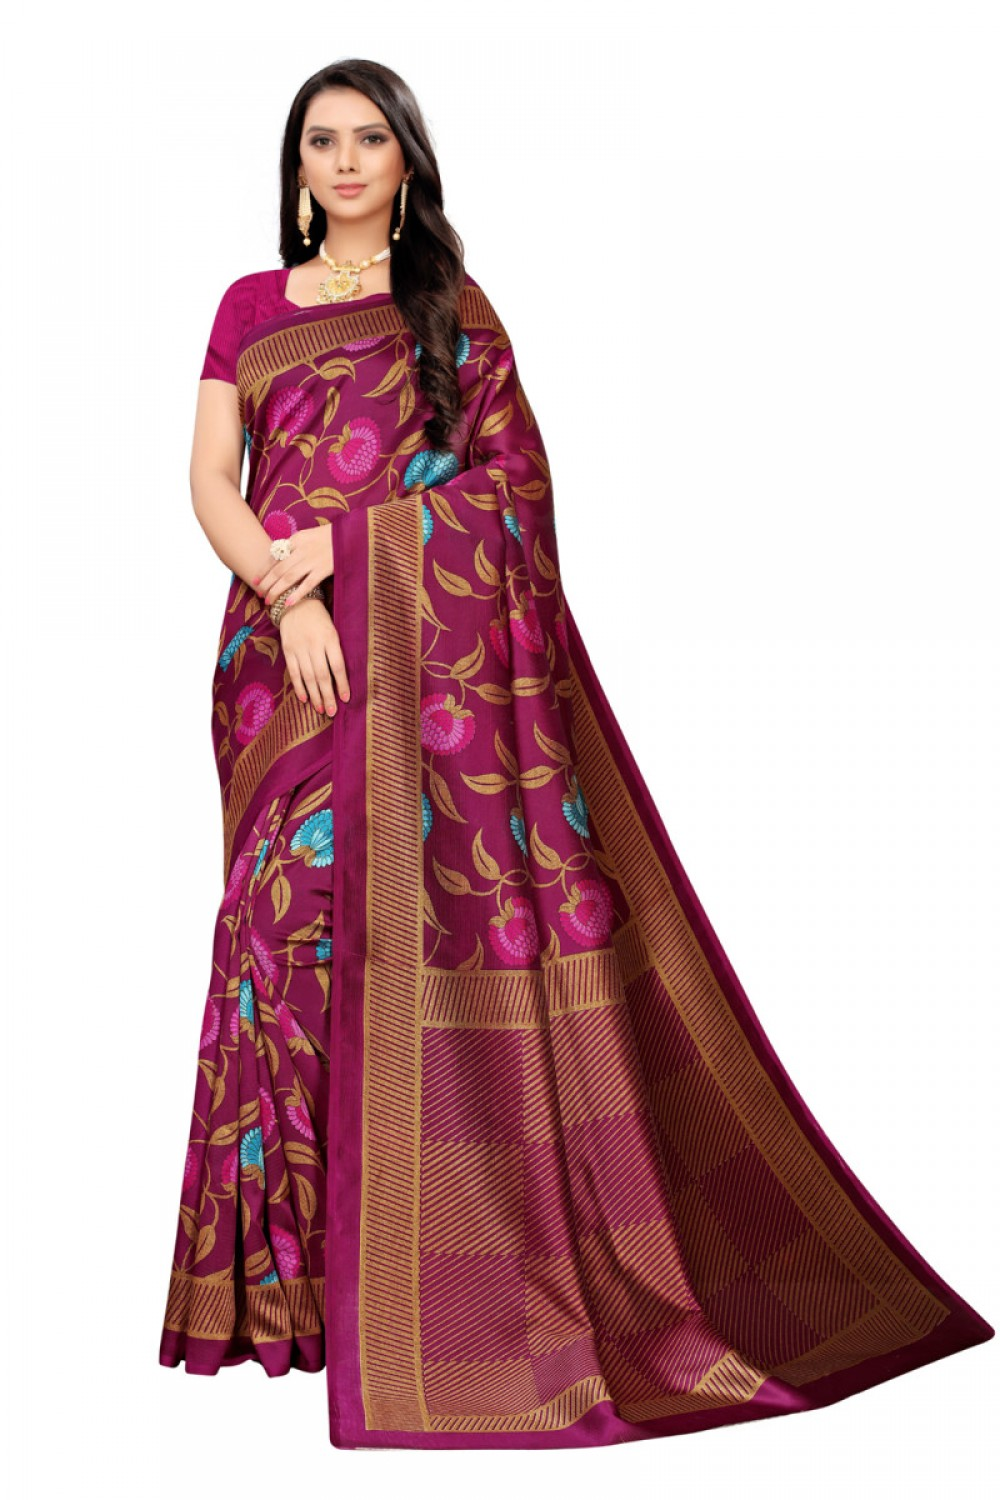 Pleasance Rani party wear Denting saree